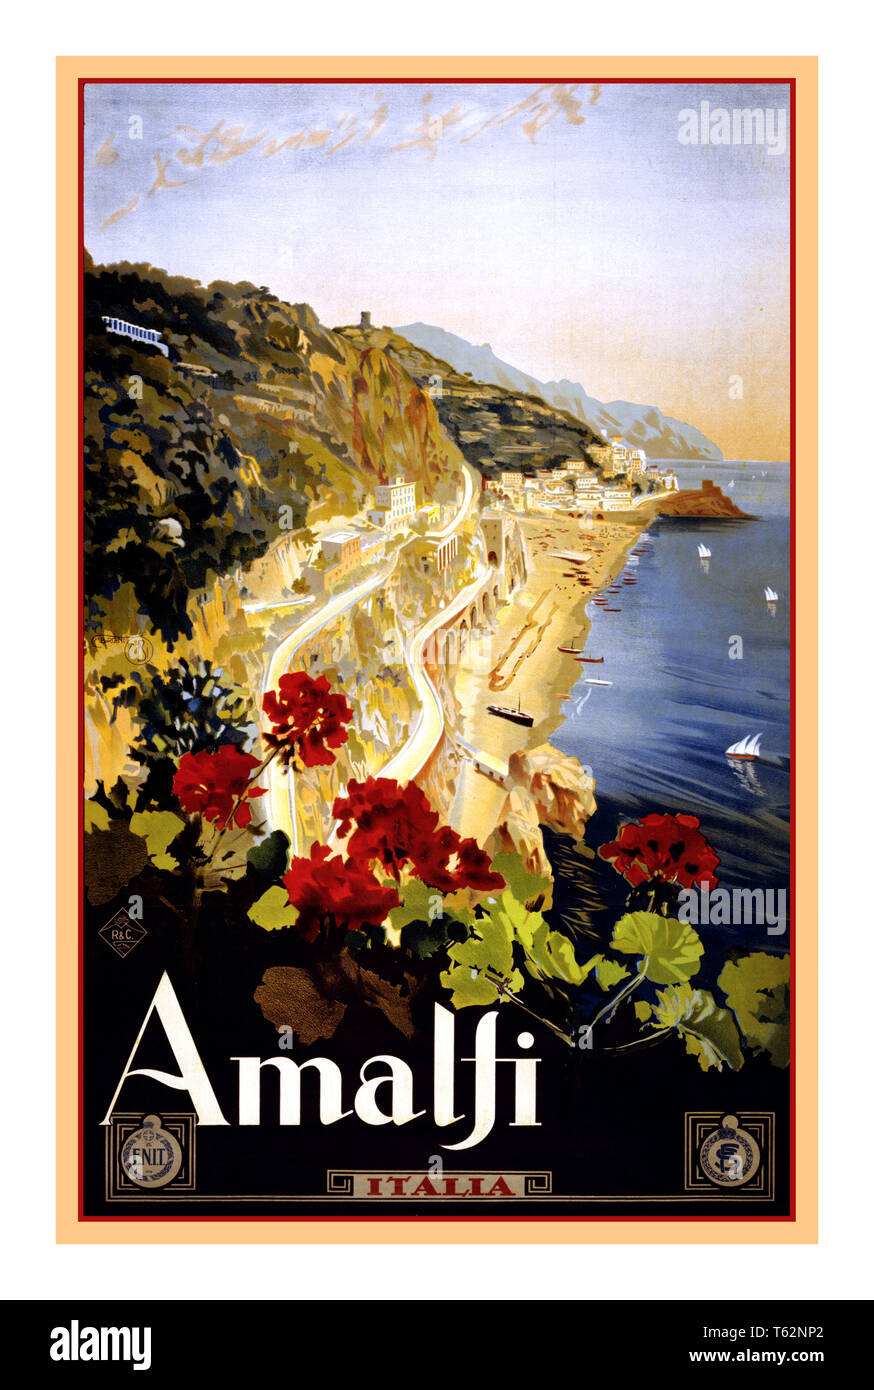 AMALFI Vintage Historic Travel Poster 1900's Amalfi Italy Travel poster by Mario Borgoni, shows Amalfi coastline with geraniums in foreground. Date 1920 Amalfi Campania Italy - Stock Image